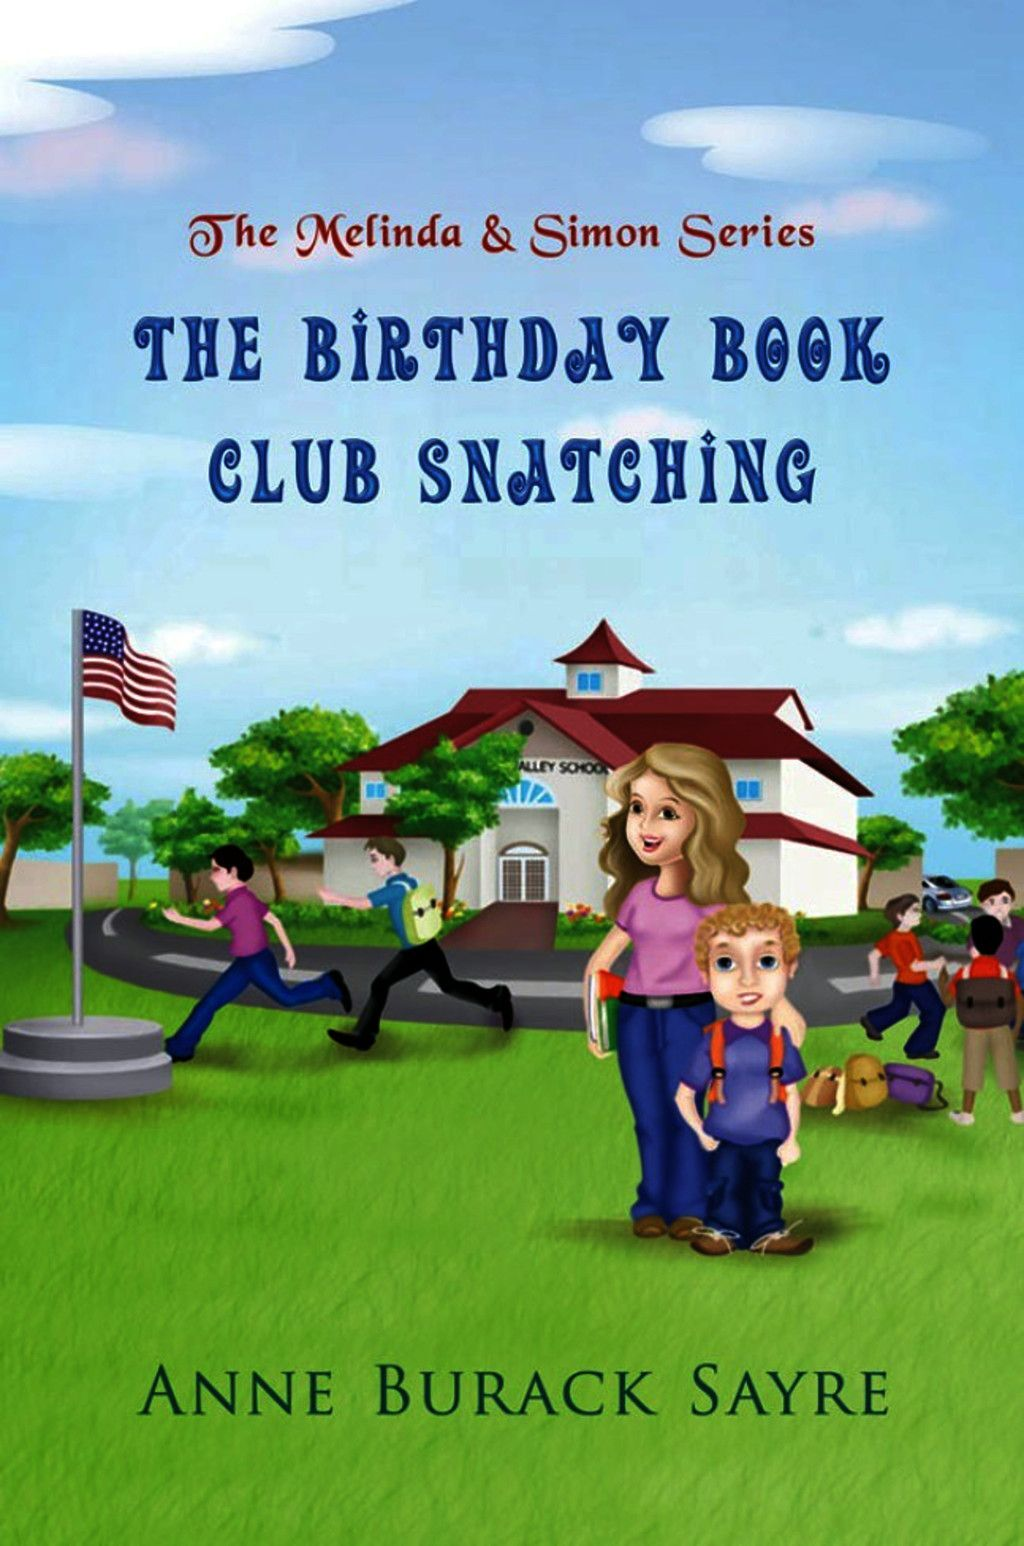 The Birthday Book Club Snatching